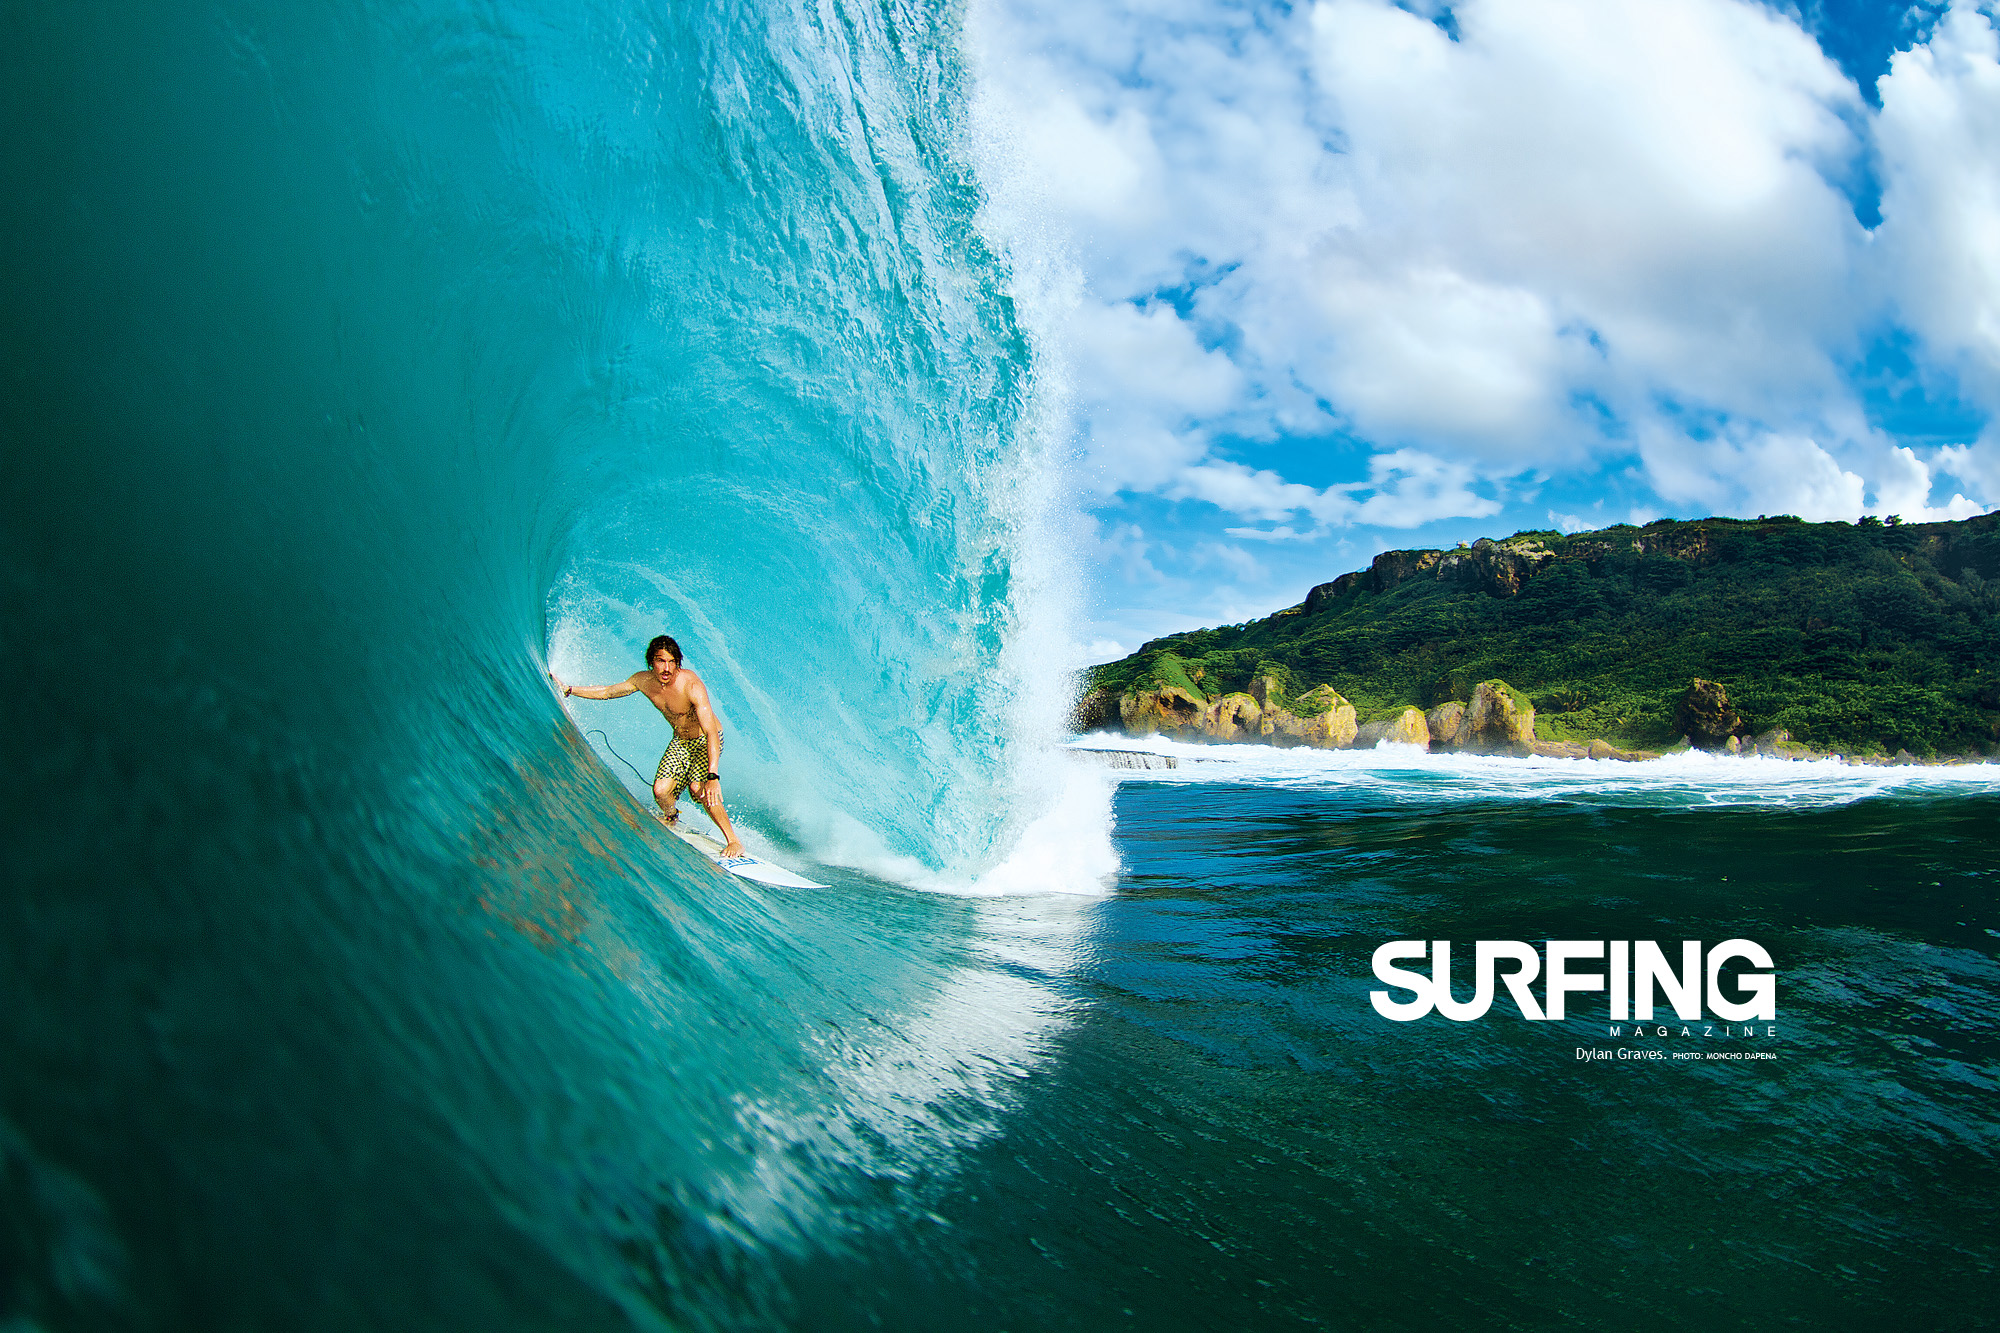 71 Hd Surfing Wallpaper On Wallpapersafari